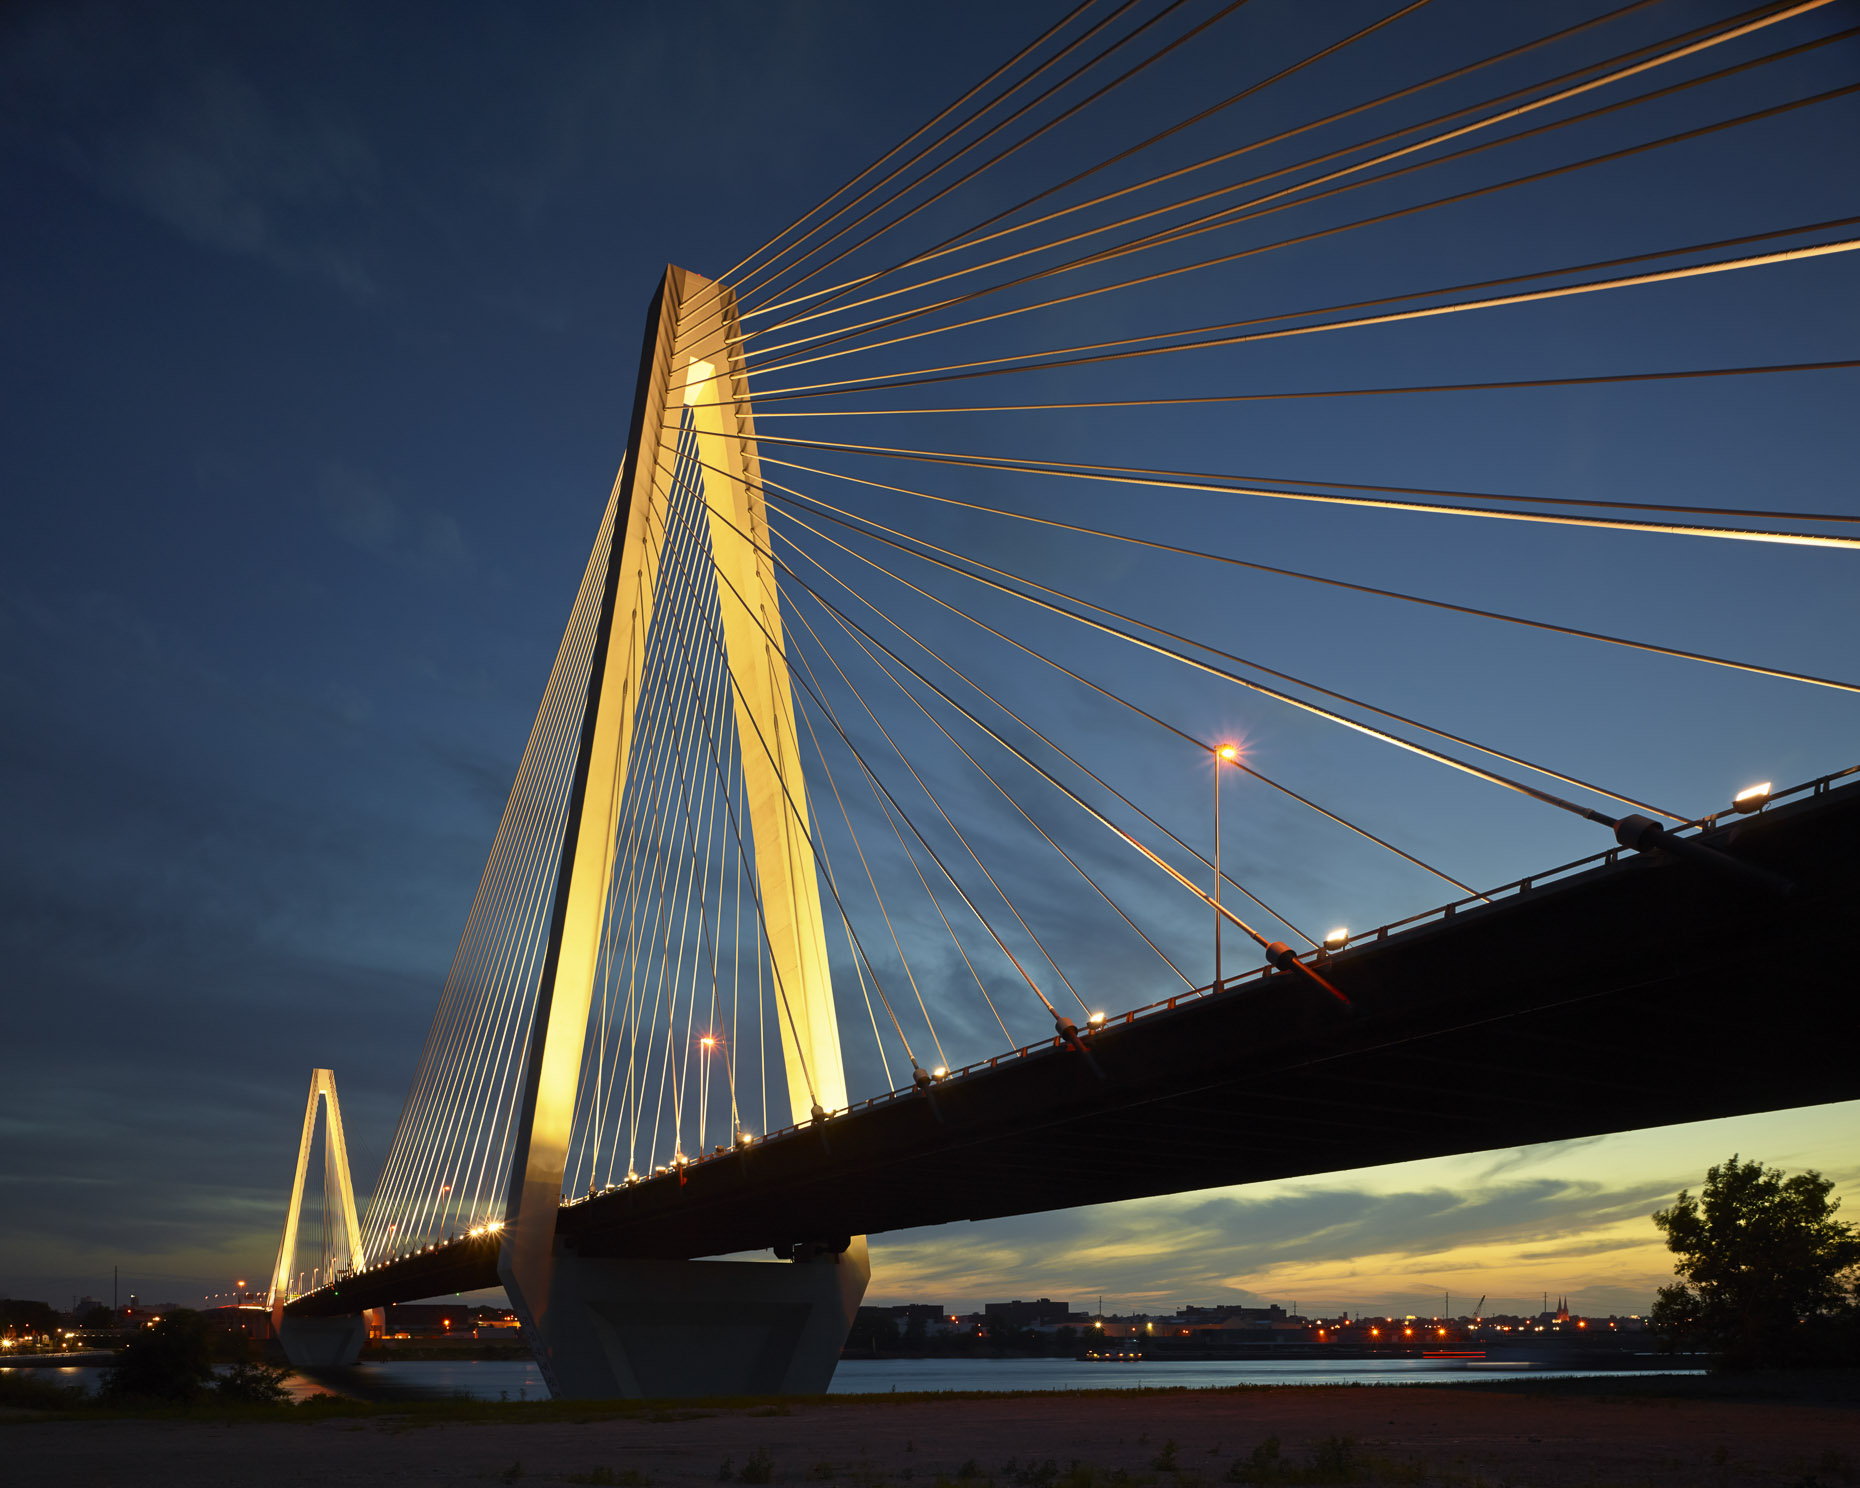 US I-70 Stan Musial Veterans Memorial Bridge by HNTB photographed by Brad Feinknopf based in Columbus, Ohio